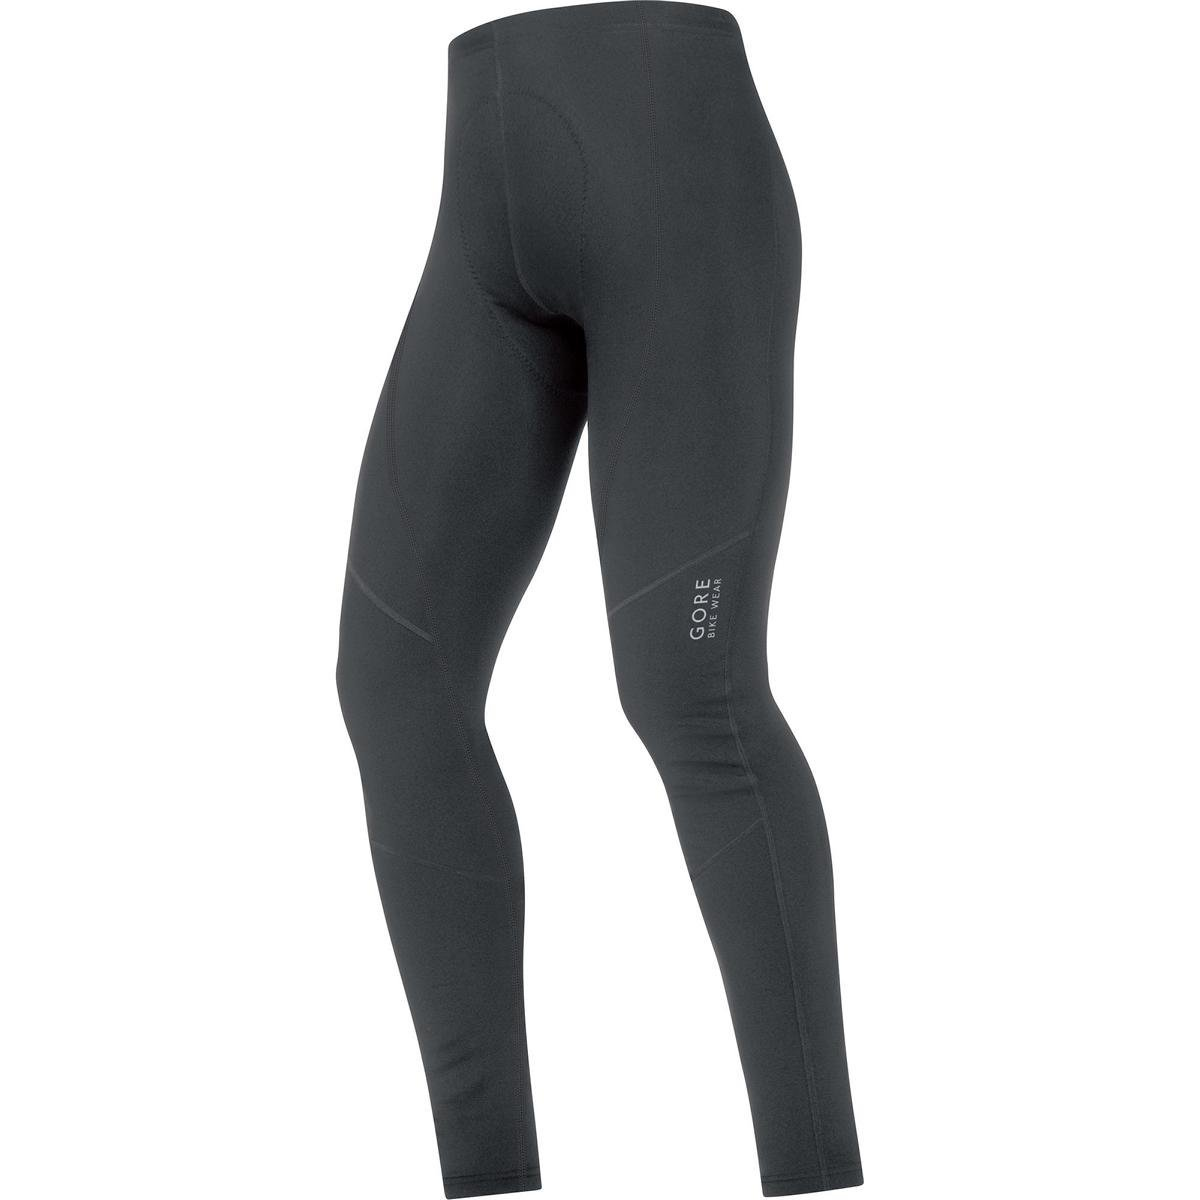 GORE BIKE WEAR Men's Long Thermal Cycling Tights with Seat Padding, GORE Selected Fabrics, ELEMENT 2.0 Thermo Tights+, Size S, Black, TELTMT